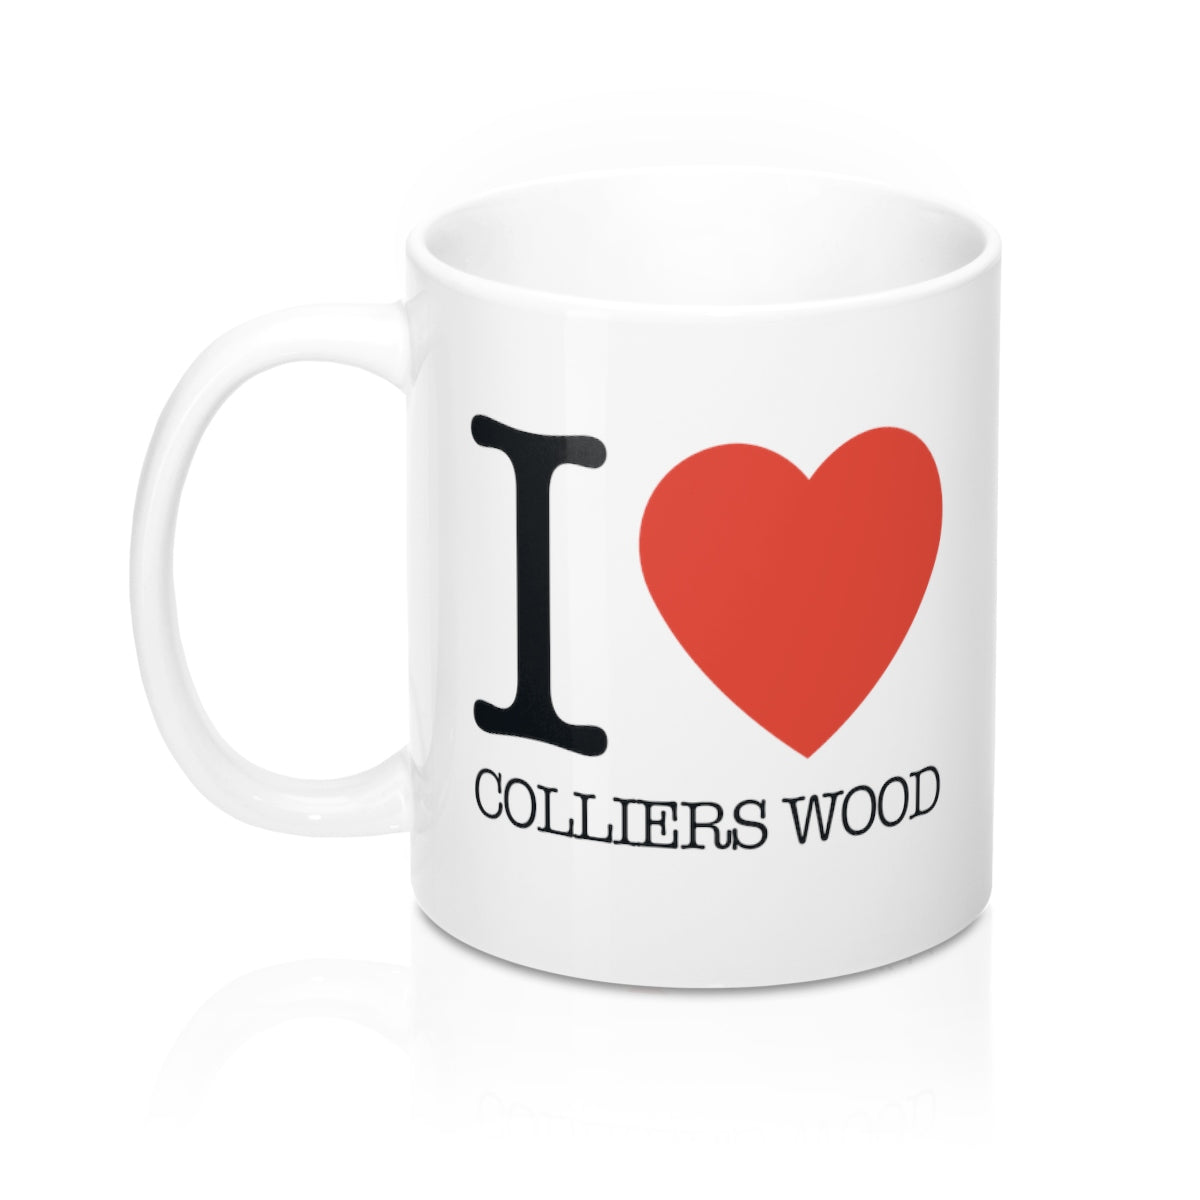 I Heart Colliers Wood Mug